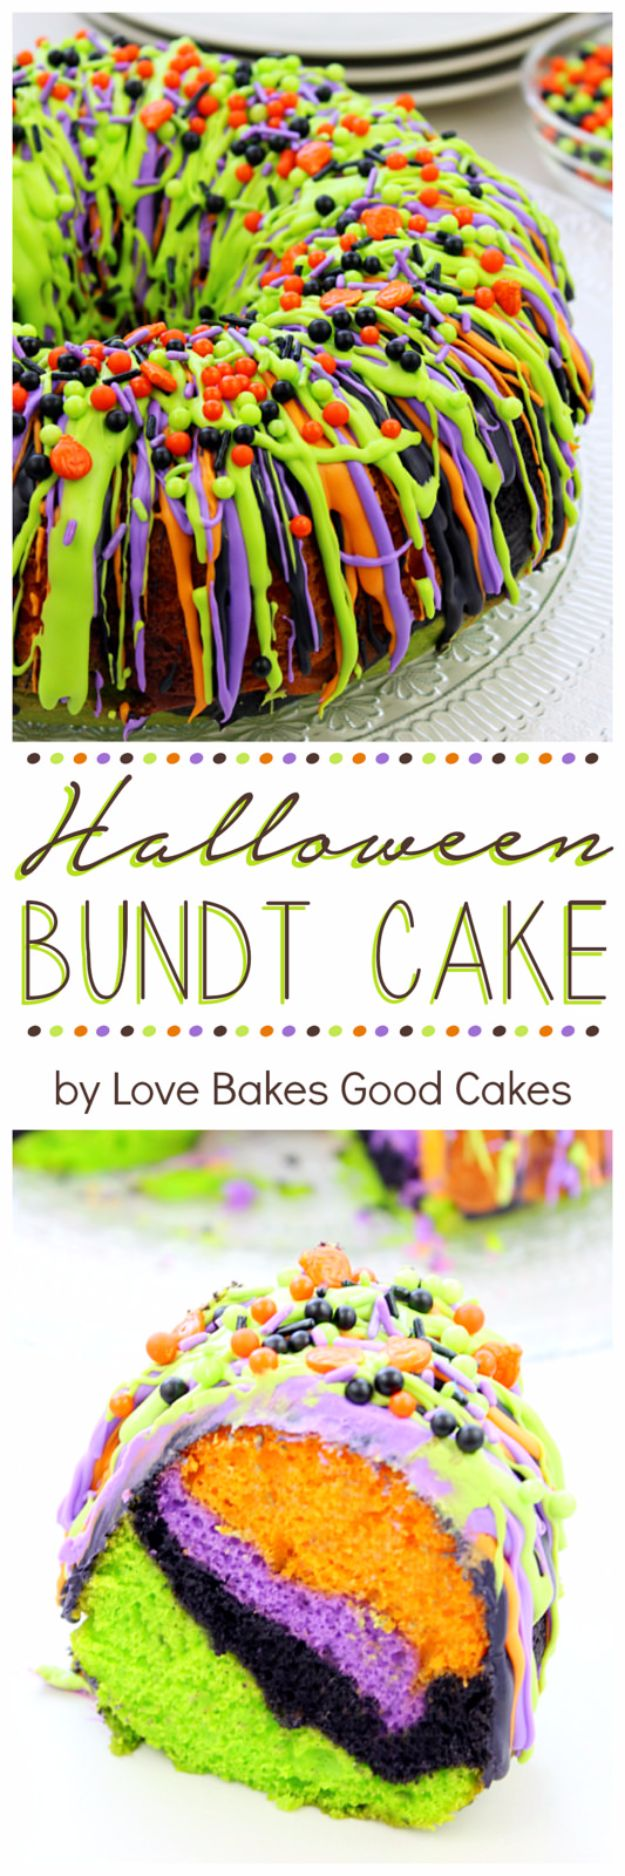 Best Halloween Party Snacks - Halloween Bundt Cake - Healthy Ideas for Kids for School, Teens and Adults - Easy and Quick Recipes and Idea for Dips, Chips, Spooky Cookies and Treats - Appetizers and Finger Foods Made With Vegetables, No Candy, Cheap Food, Scary DIY Party Foods With Step by Step Tutorials #halloween #halloweenrecipes #halloweenparty